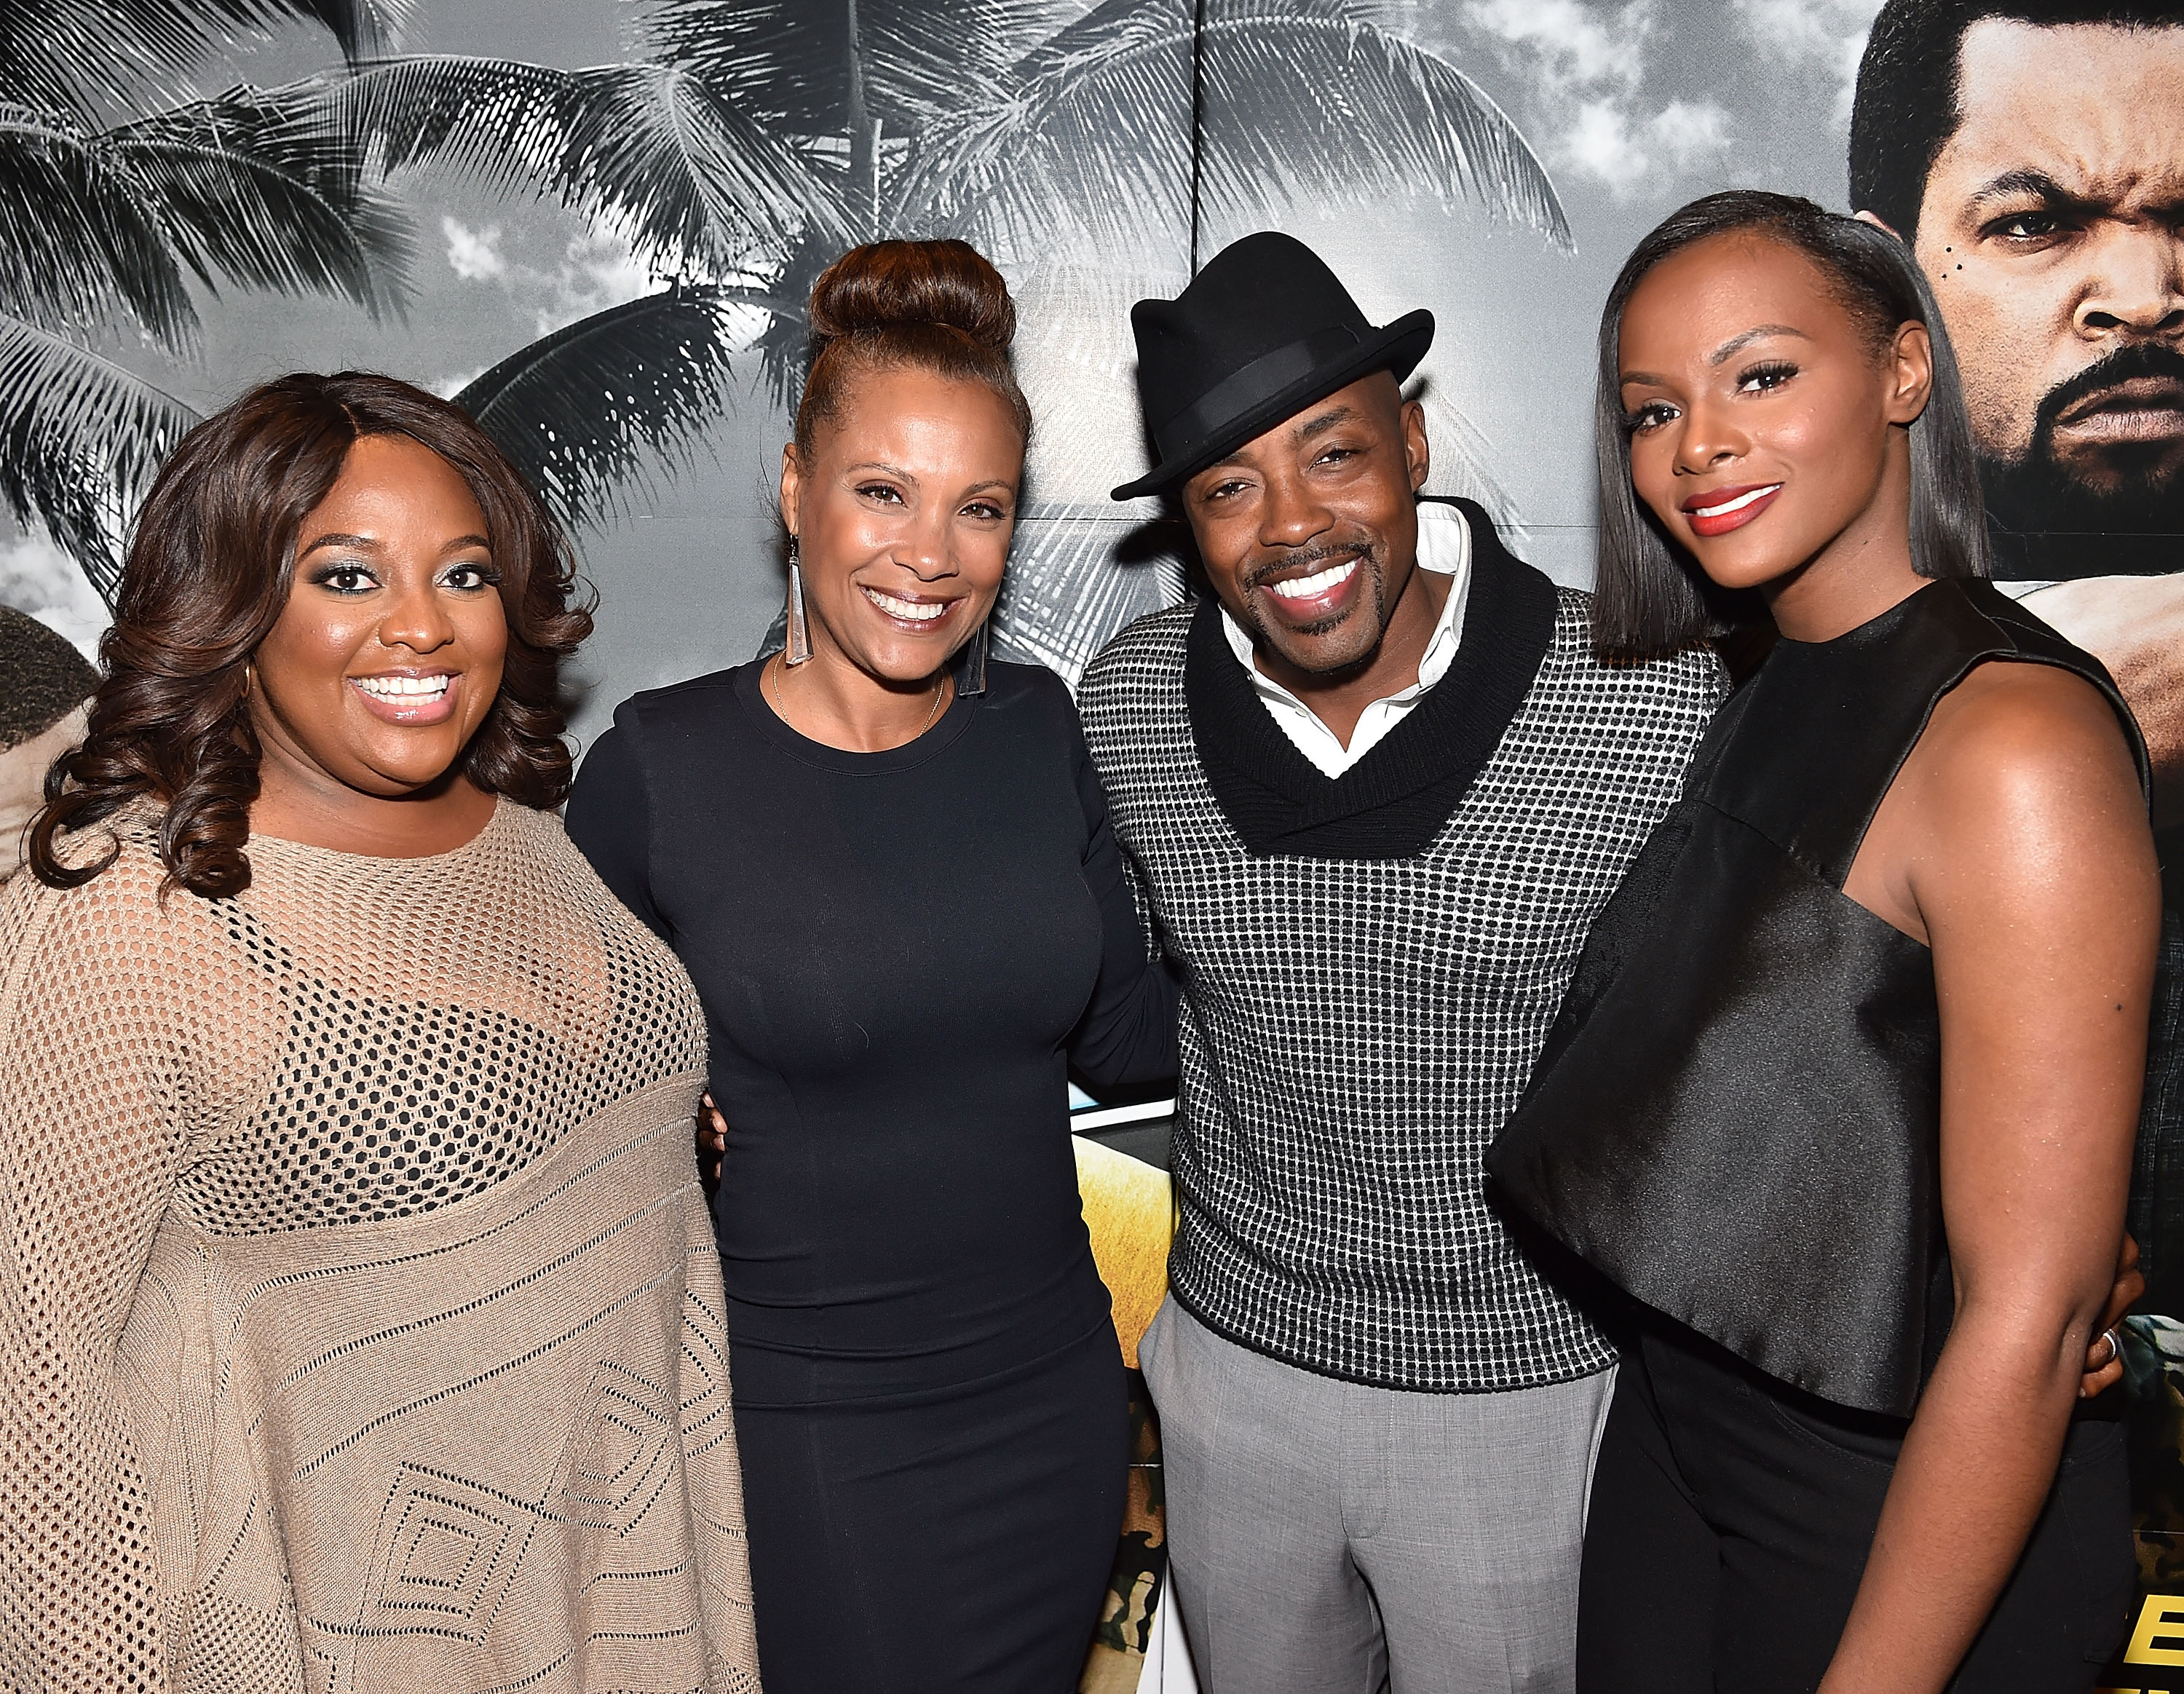 'Ride Along 2' Advance Screening With Castmembers Tika Sumpter, Sherri Shepherd And Producer Will Packer At Regal Atlantic Station